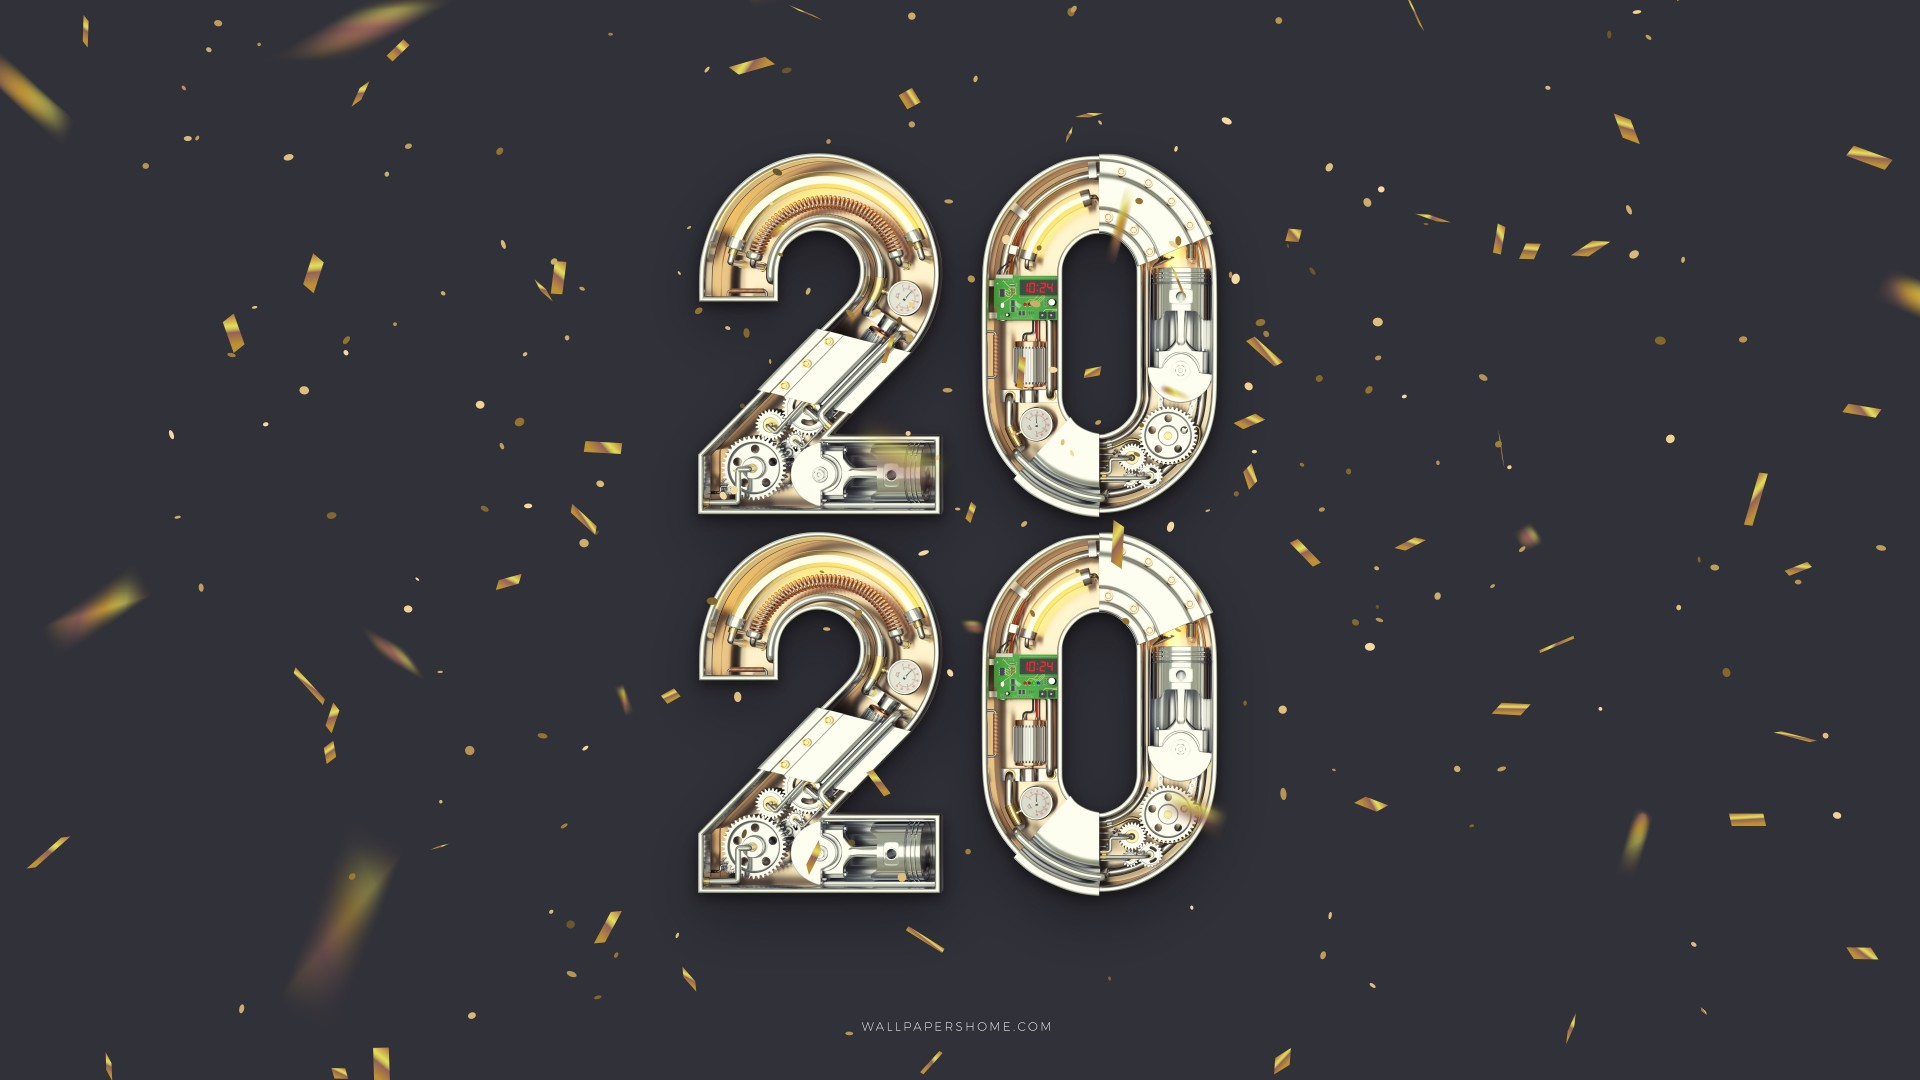 Wallpaper New Year 2020 Christmas poster 8k Holidays 20910 1920x1080